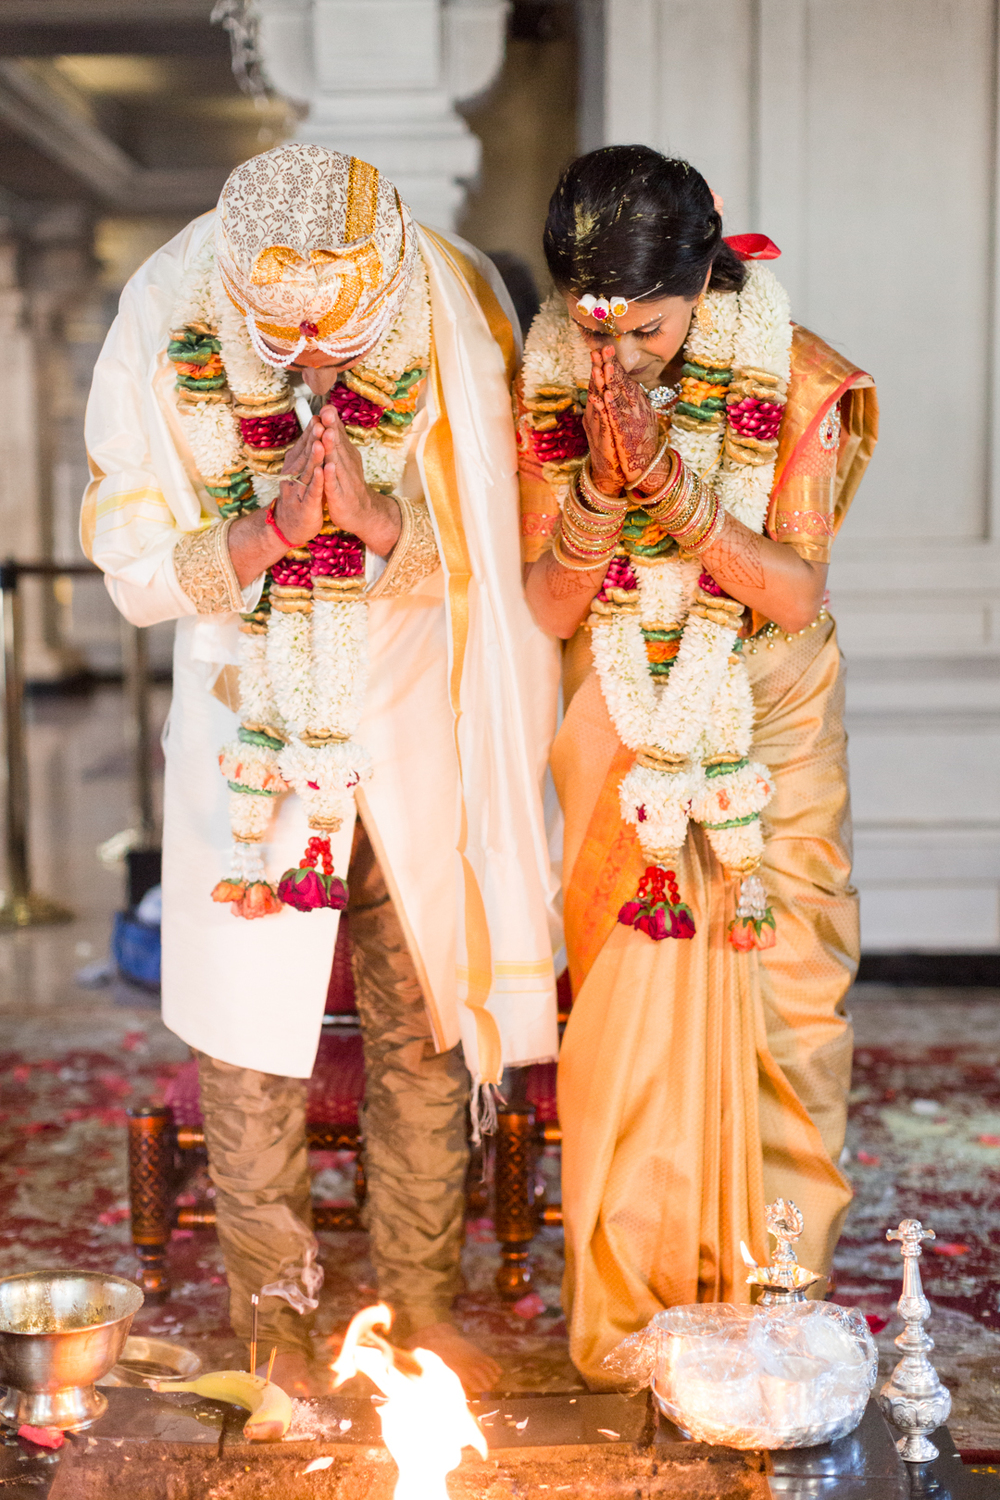 CourtneyPaige_WeddingPhotography_Nagjee-82.jpg